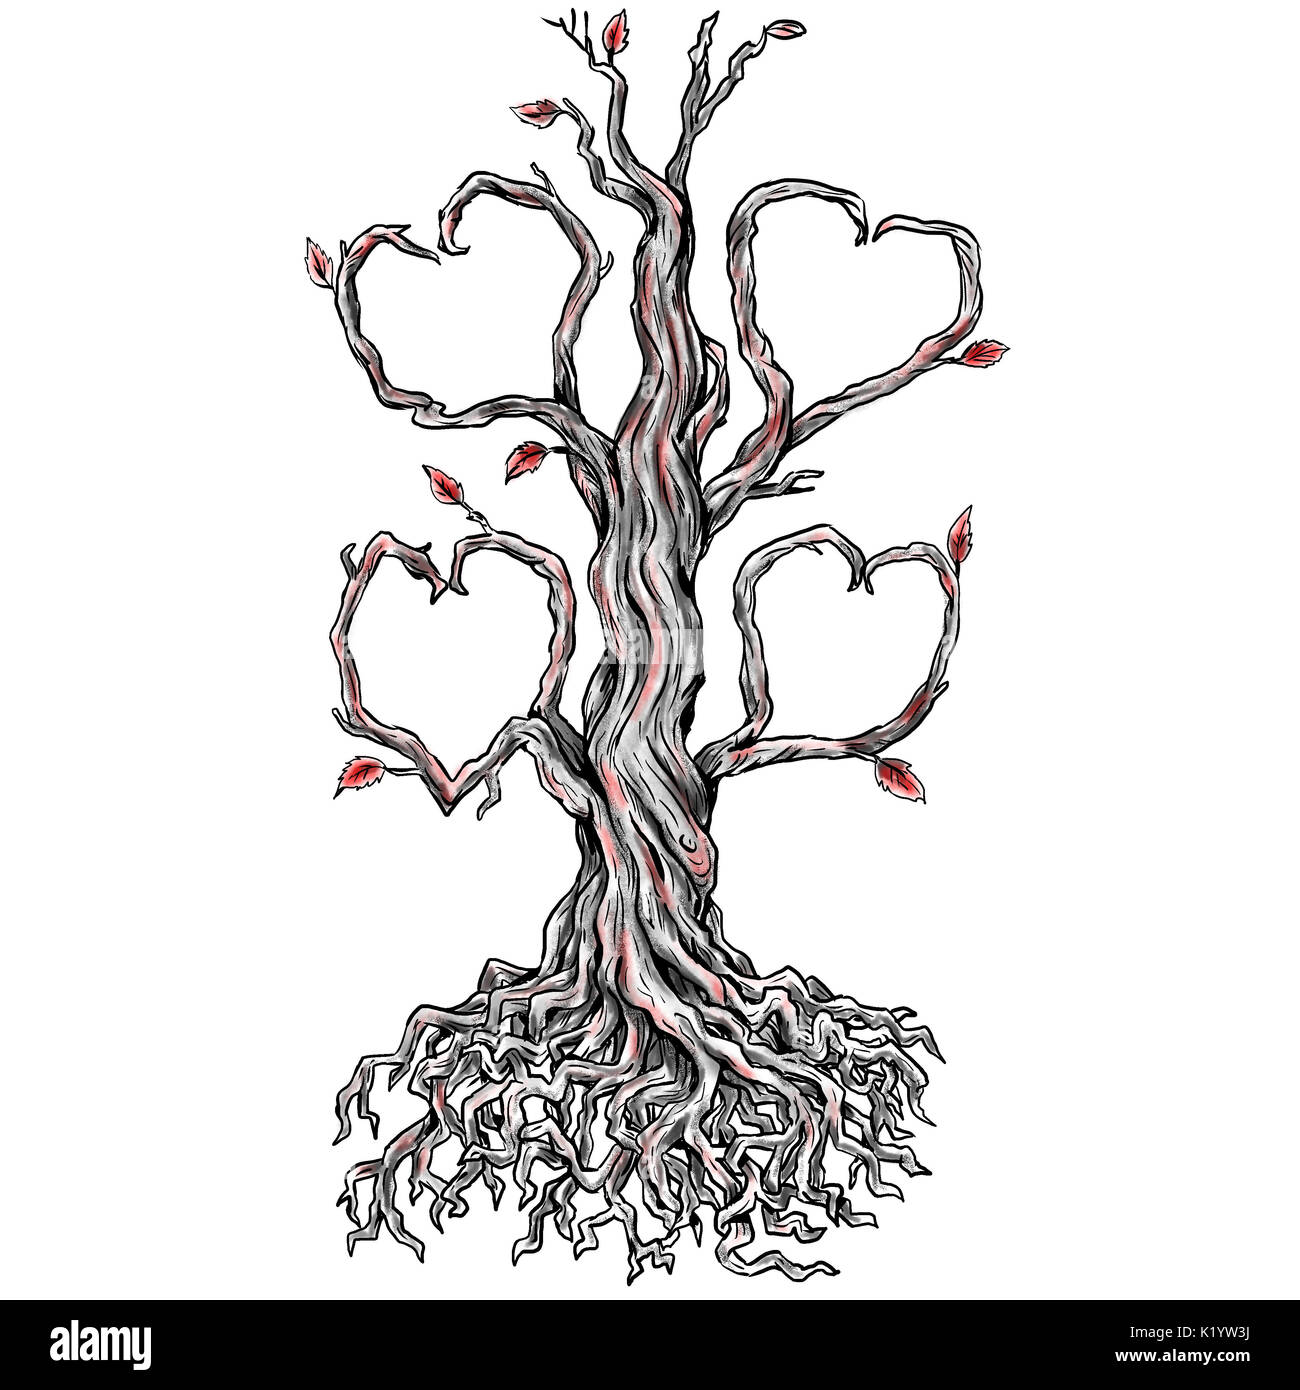 Tattoo Style Illustration Of A Twisted Oak Tree Without Leaves And Stock Photo Alamy 50,000+ vectors, stock photos & psd files. https www alamy com tattoo style illustration of a twisted oak tree without leaves and image156120374 html